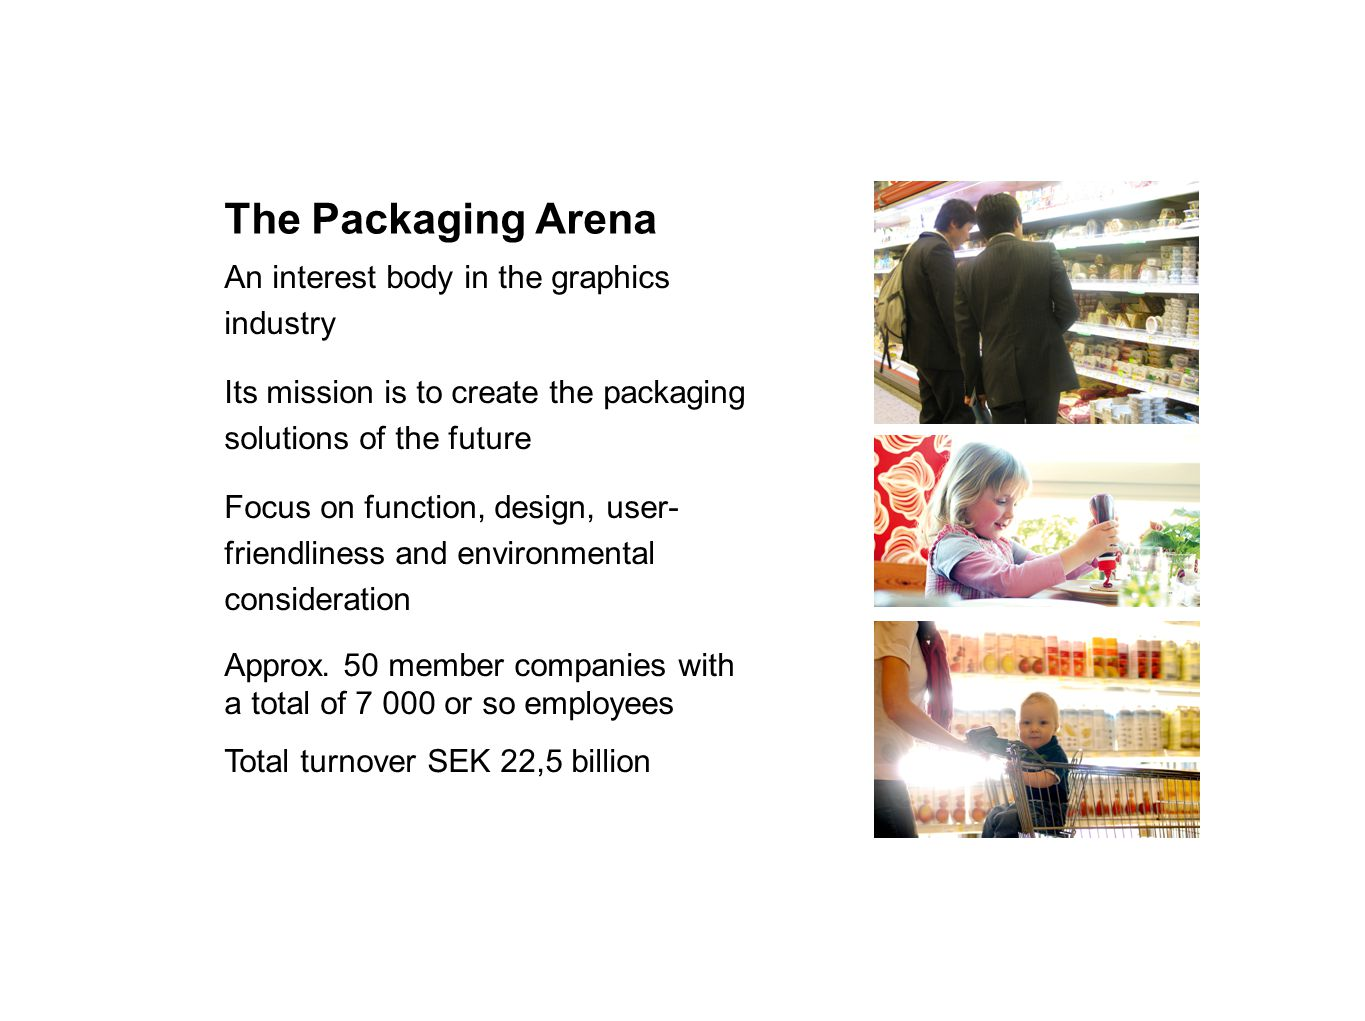 The Packaging Arena An interest body in the graphics industry